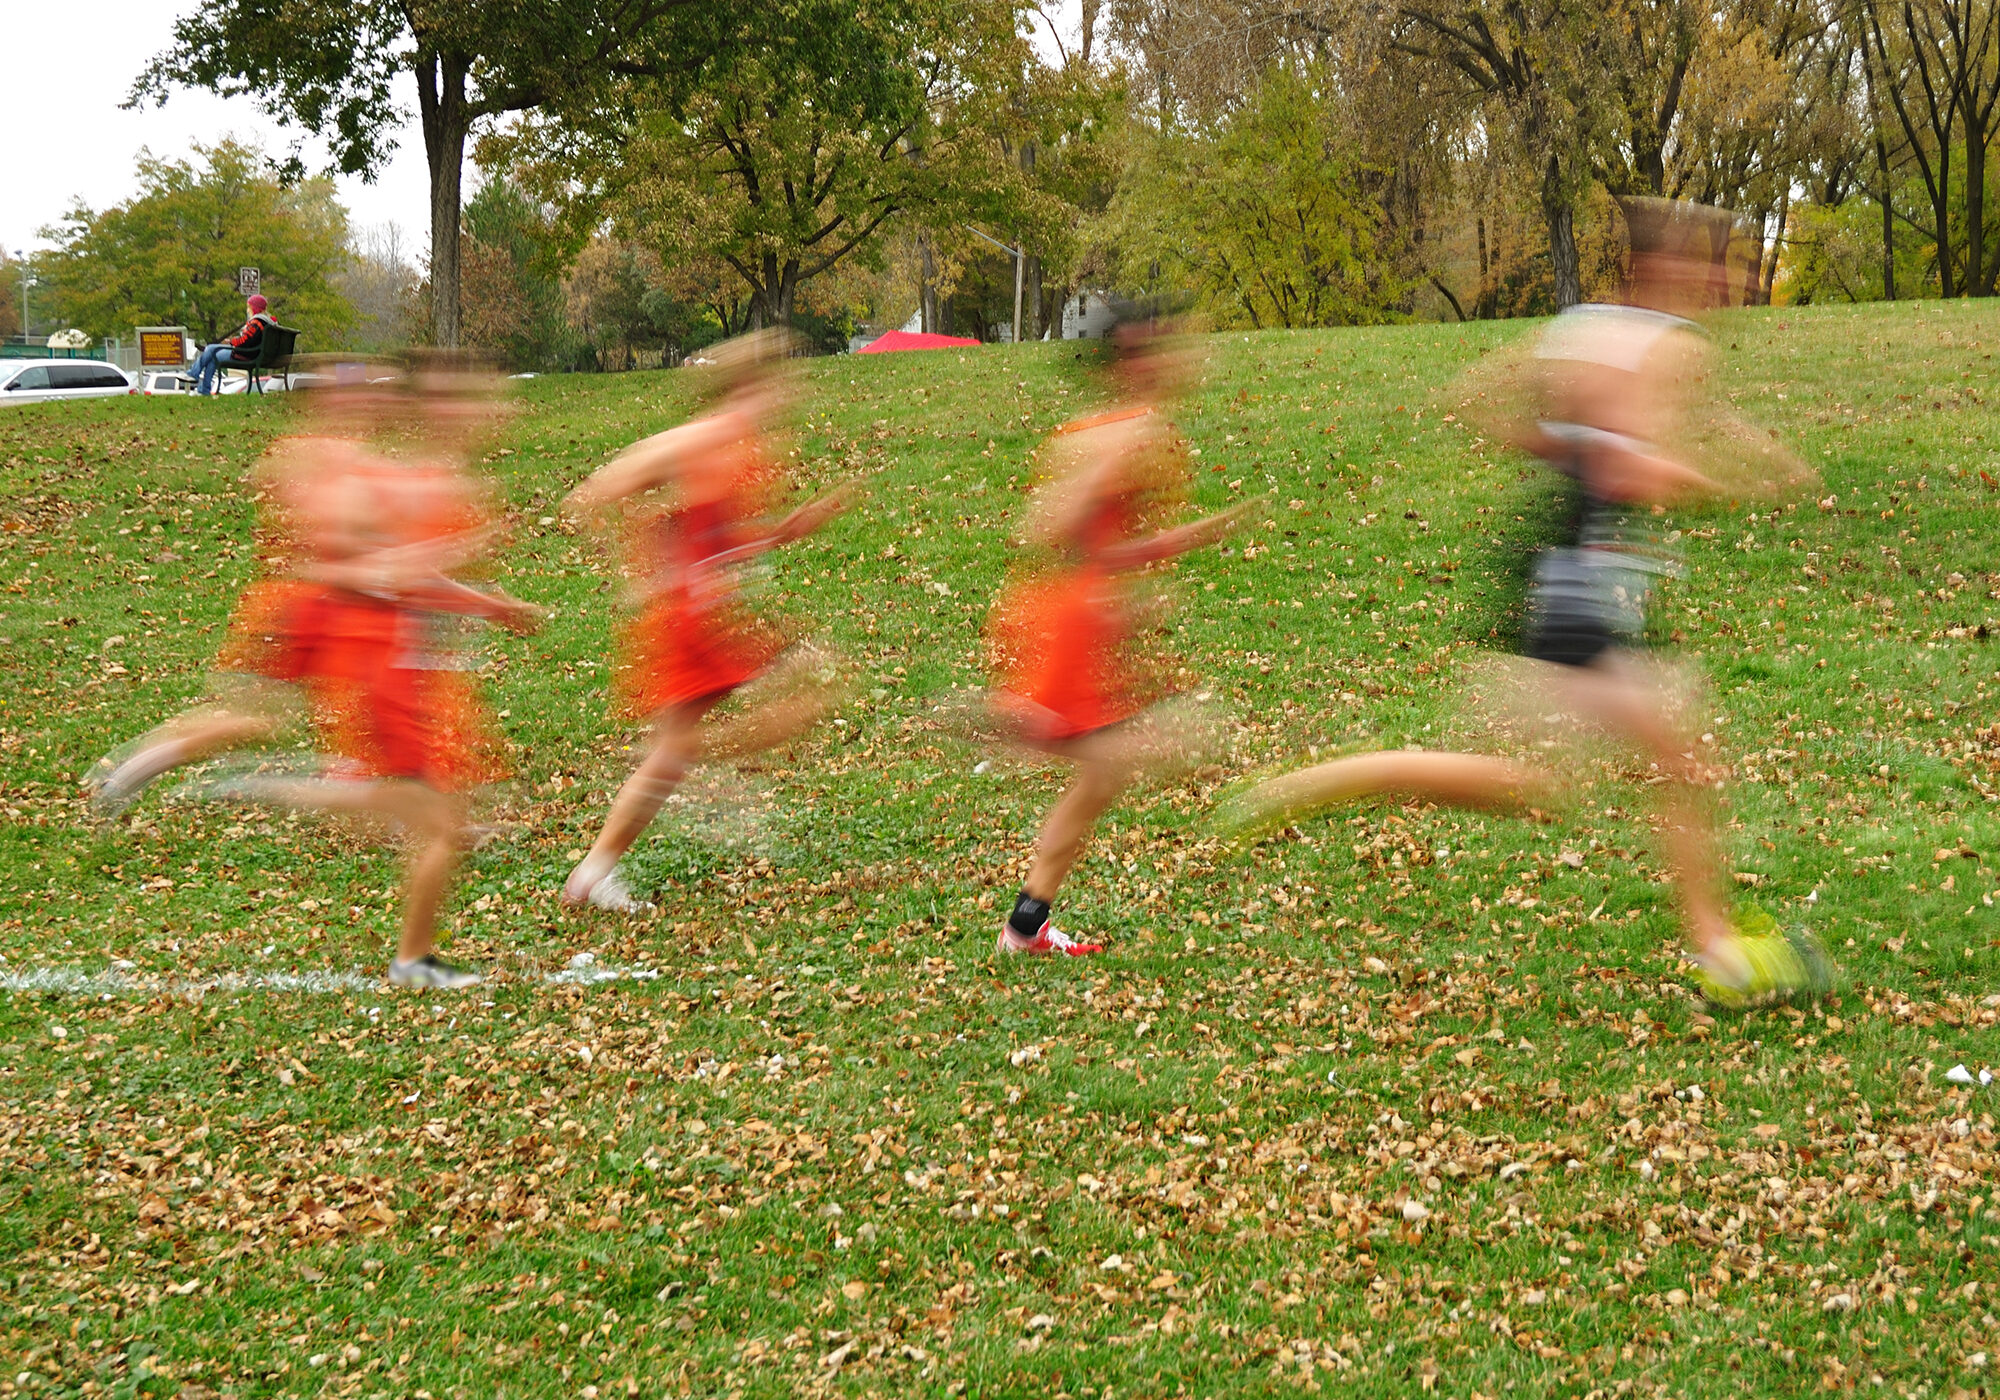 Intentially Blurred Image of Boys Running at a High School Cross Country Meet